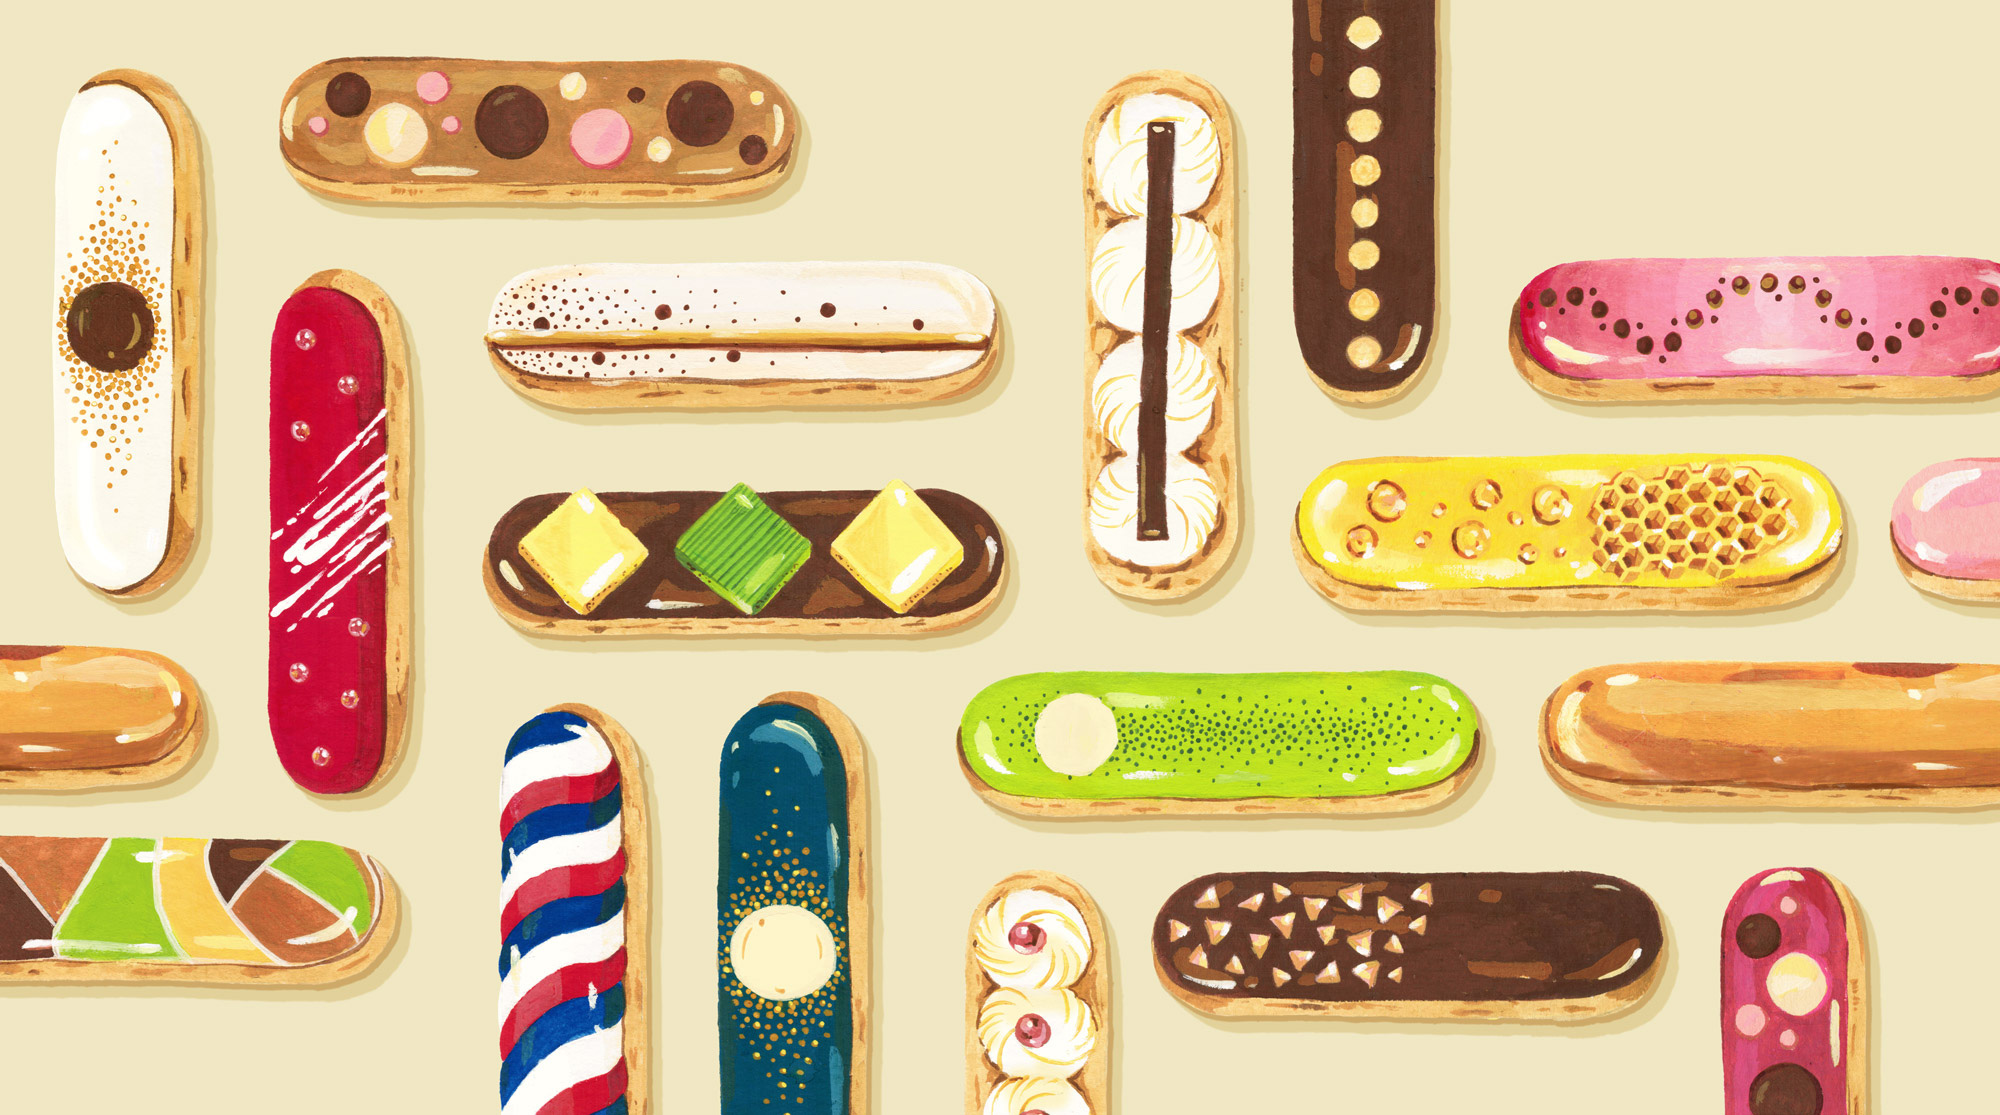 Andrea Gonzalez illustration E is for eclairs